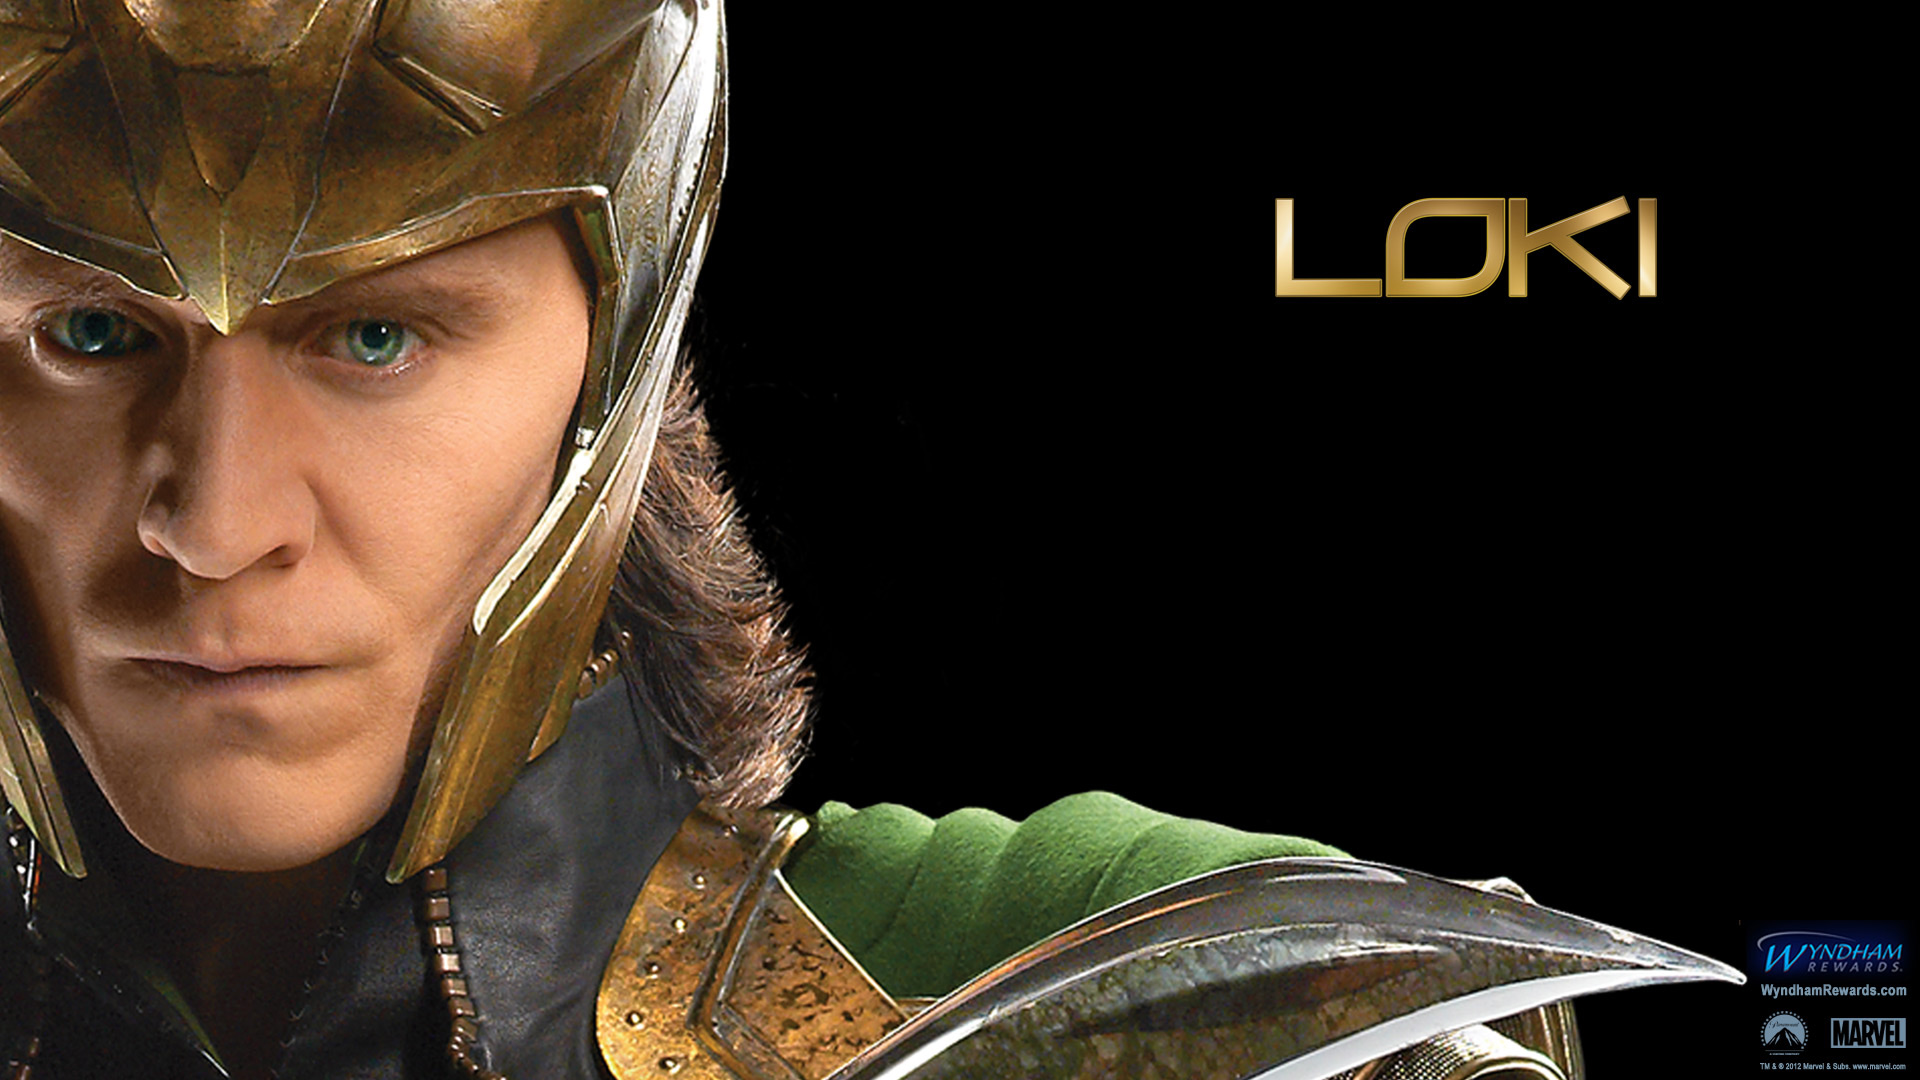 Loki Avengers Movie